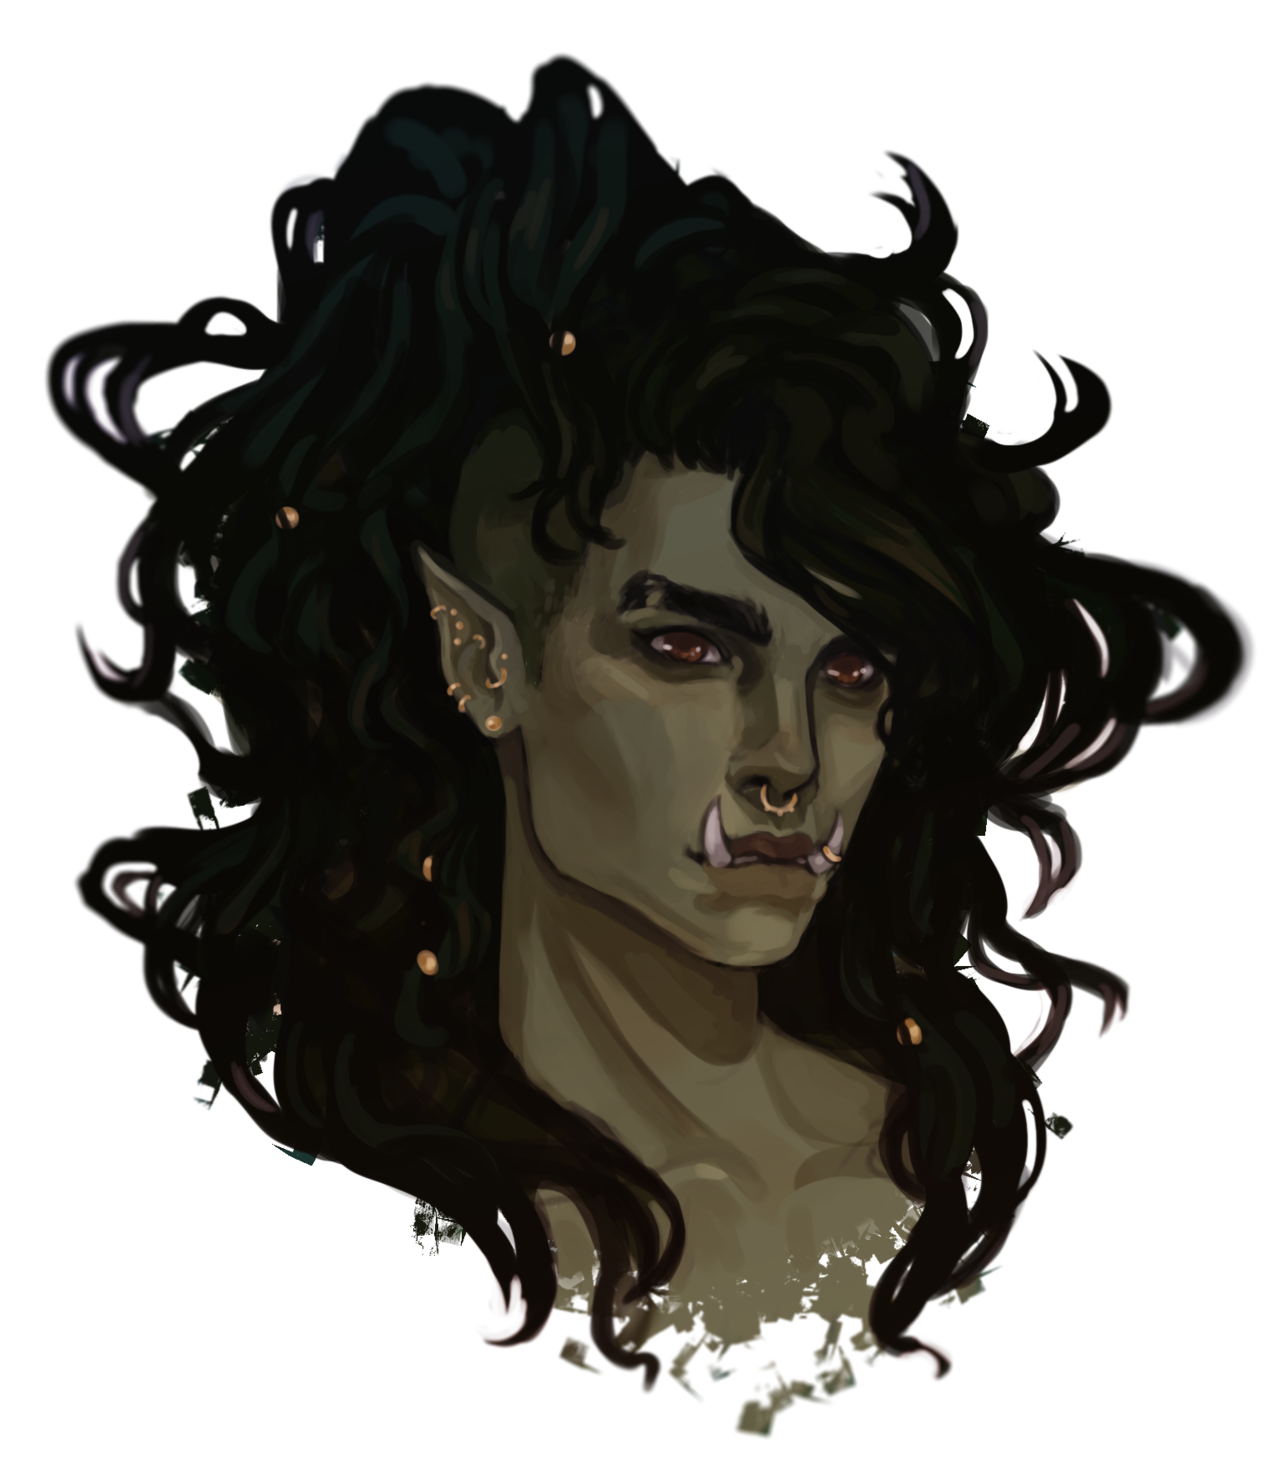 half-orc character art recent commission #characterart half-orc character art recent commission #characterart